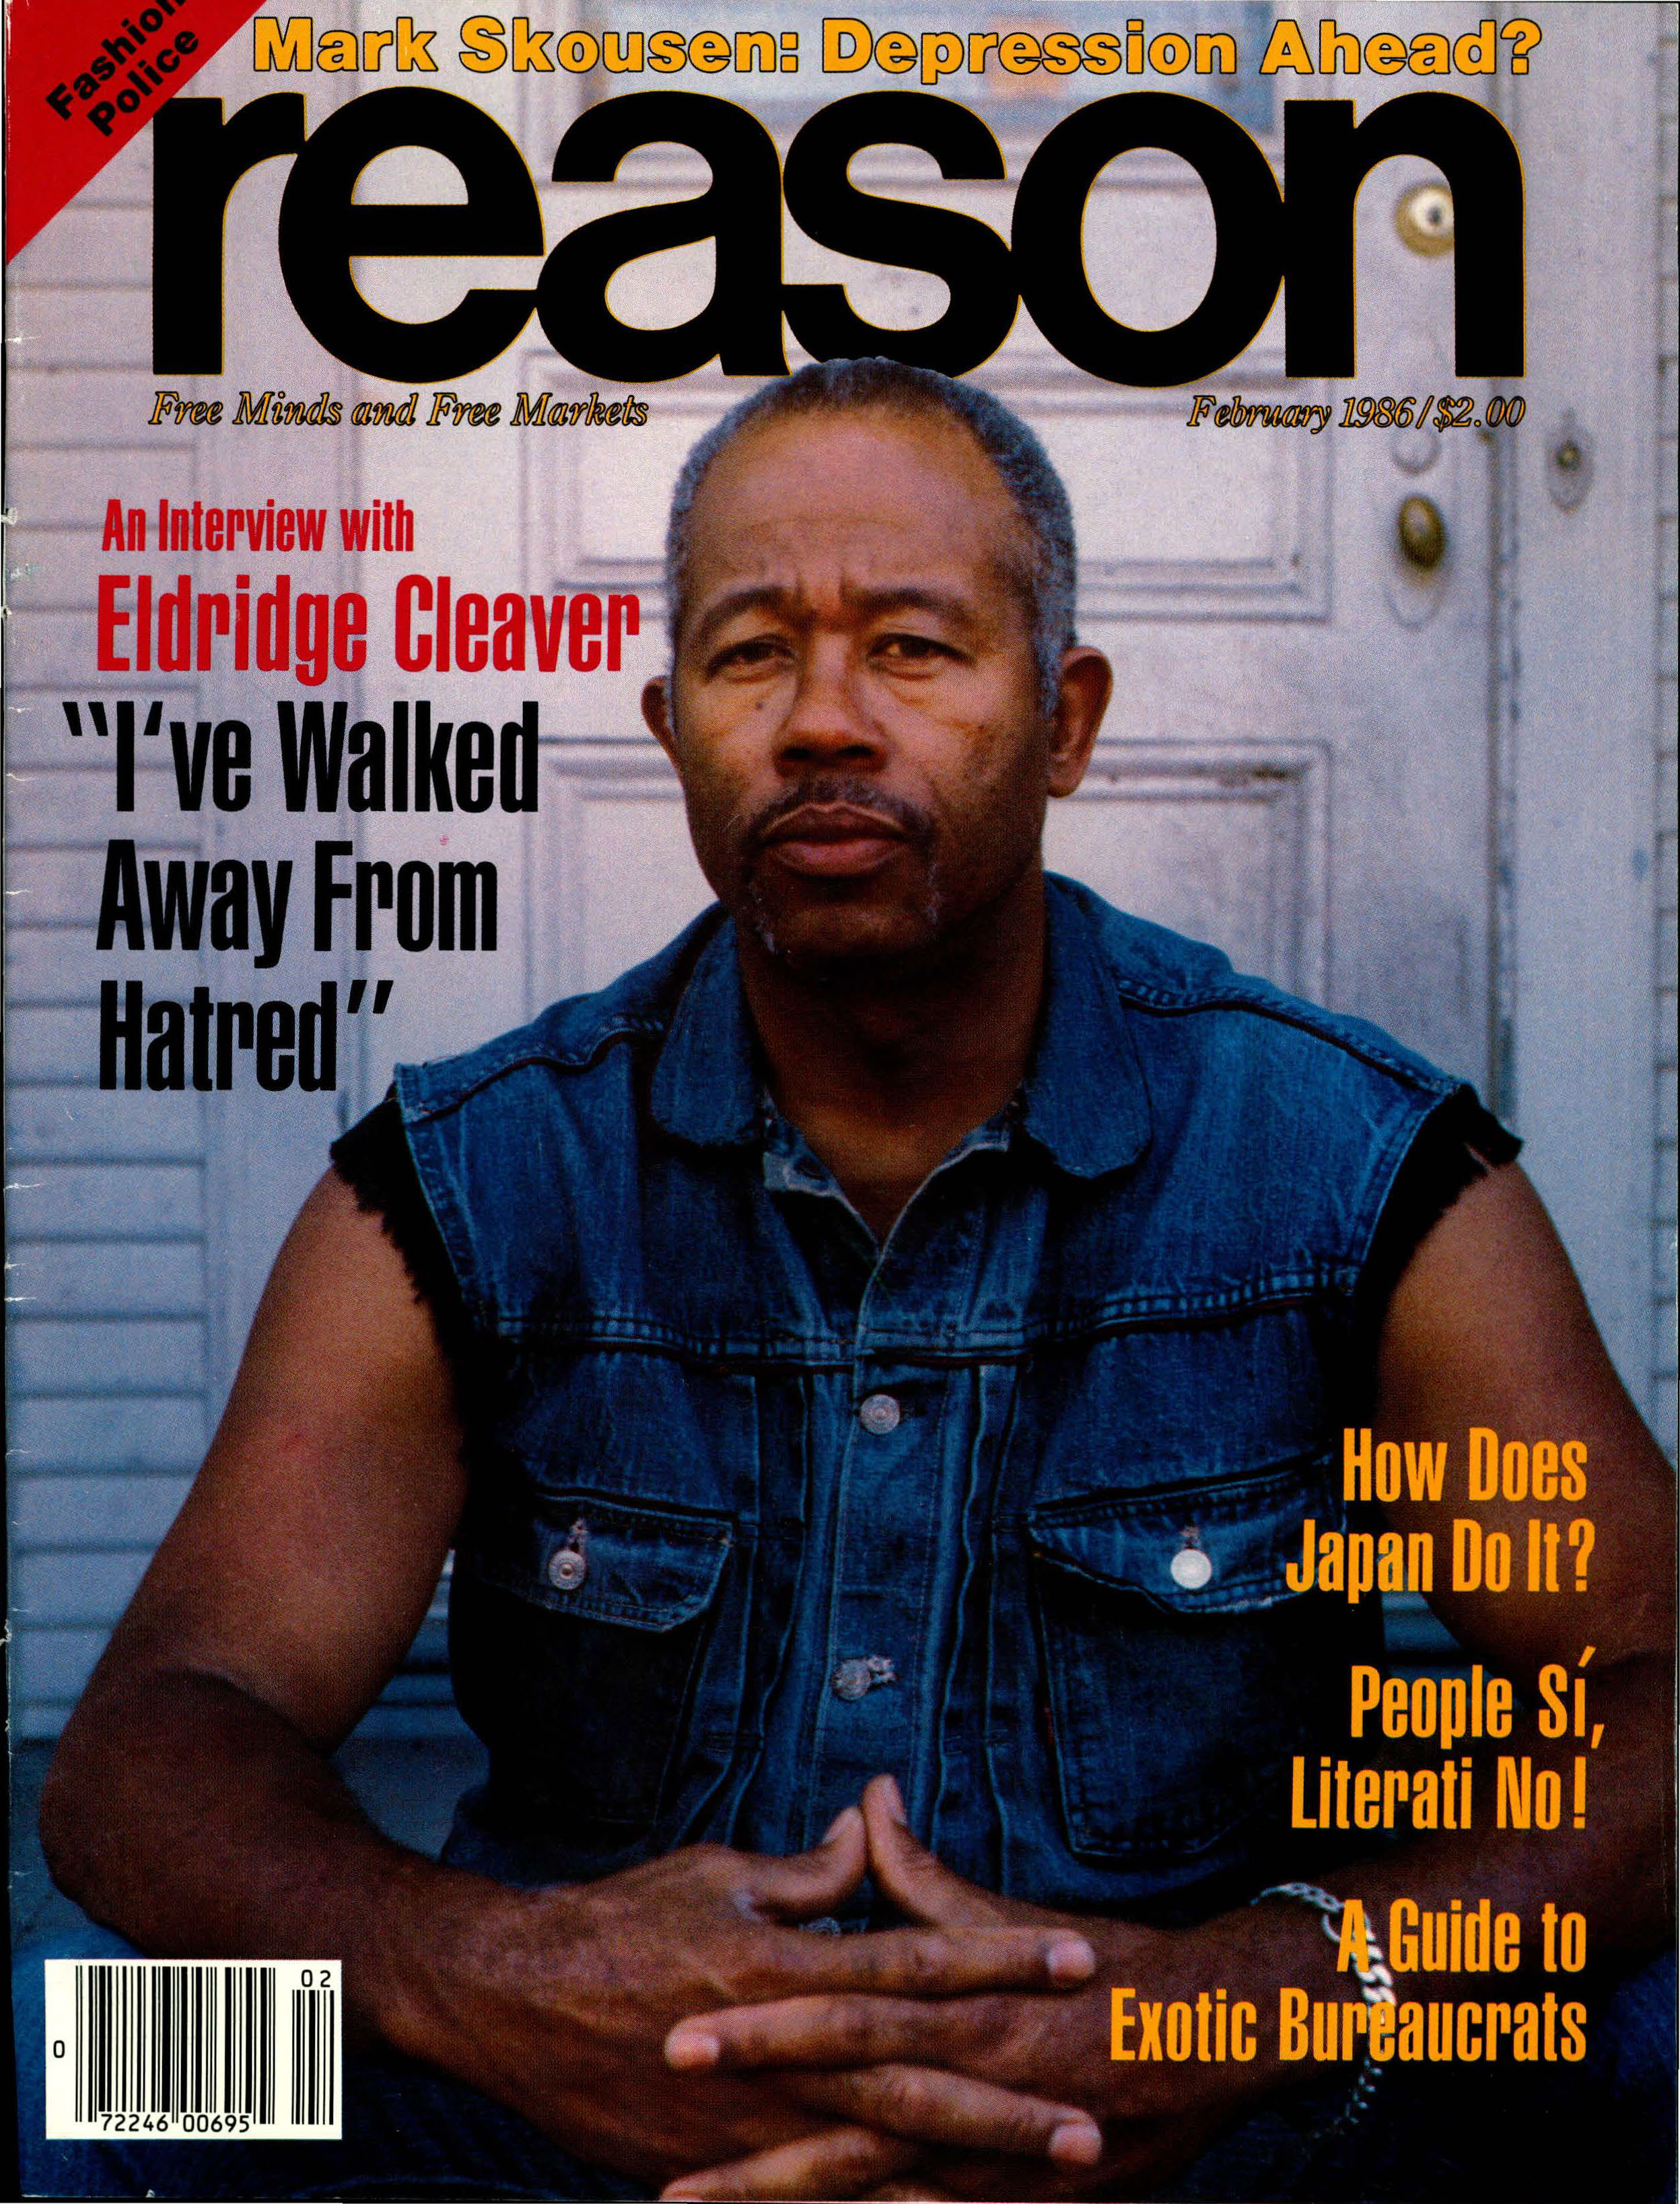 Reason Magazine, February 1986 cover image